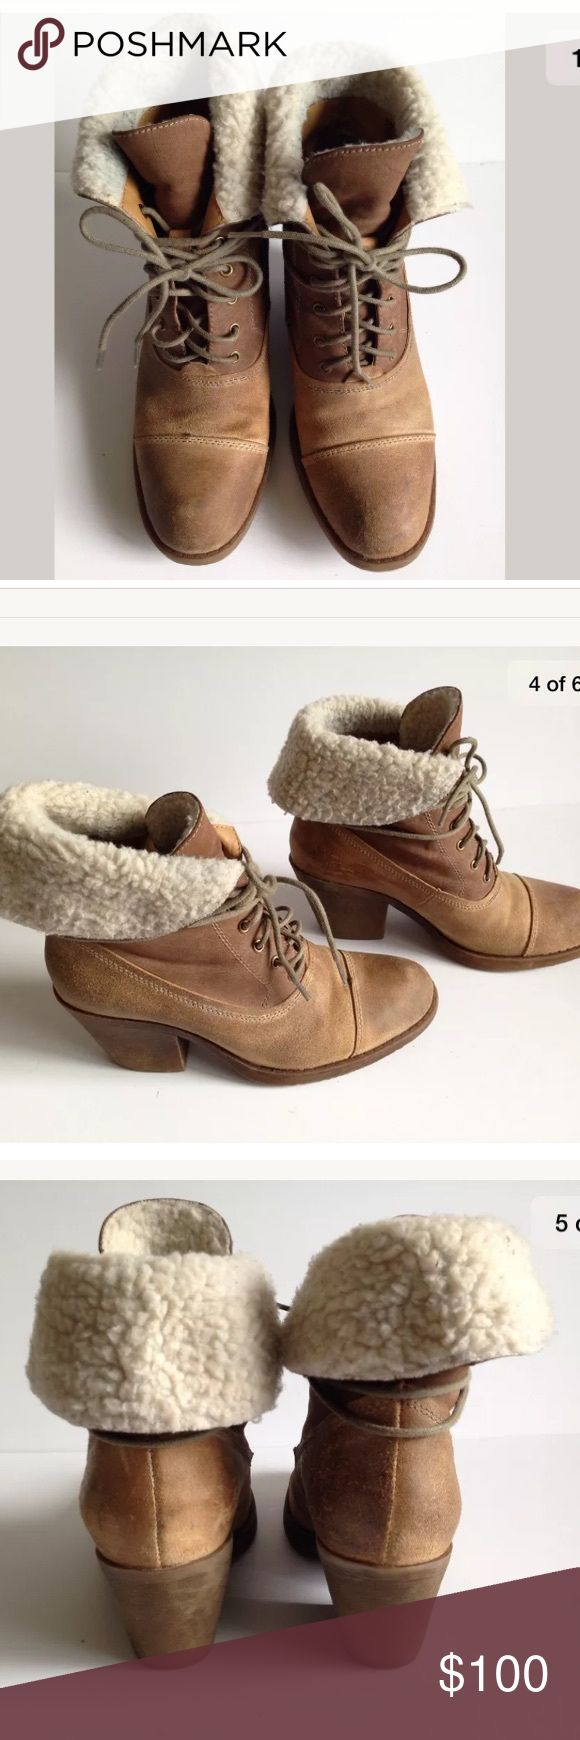 Nordstrom Miz Mooz Beige Ankle Boots with Fur 6 Beige ankle boots Fur detail  6  Heel hight 2.75in (7cm)  Worn a few times   On the inside there is a bit of color on the fur from jeans but can be removed with washing.  Otherwise in great condition Nordstrom Shoes Ankle Boots & Booties